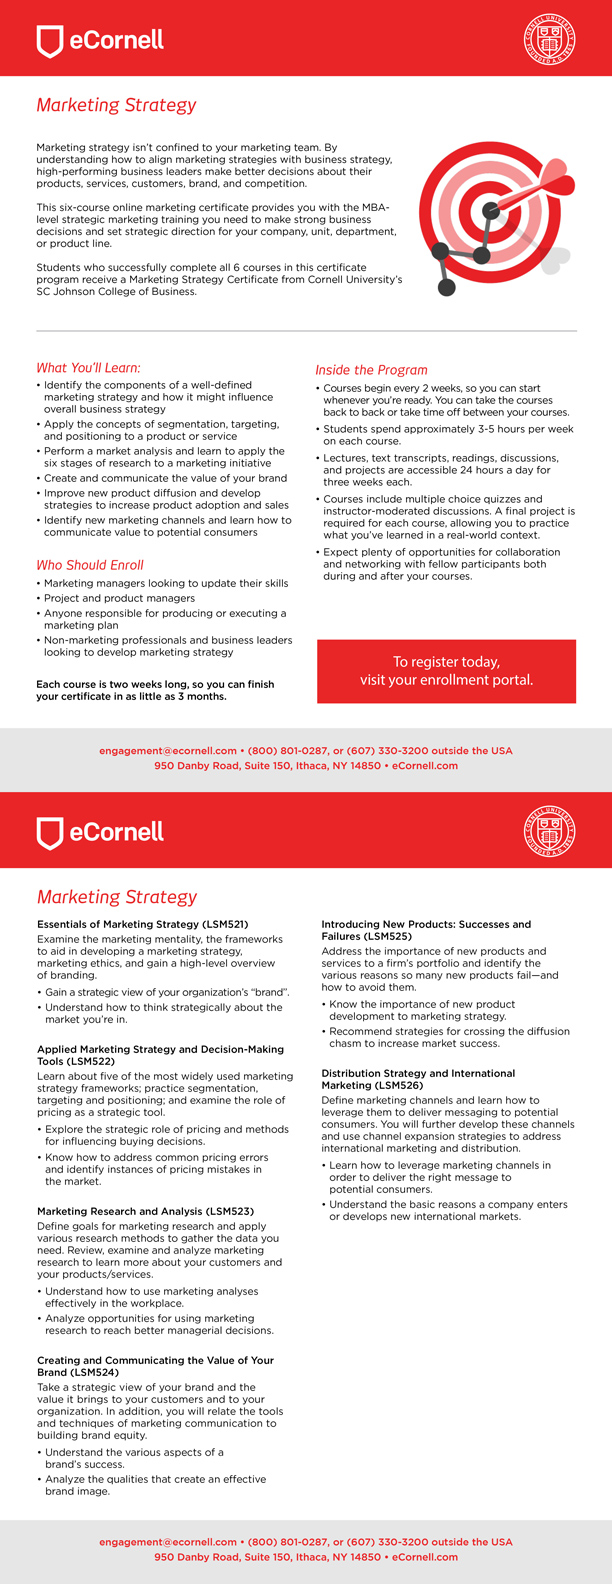 Marketing Strategy Flyer for Corporations